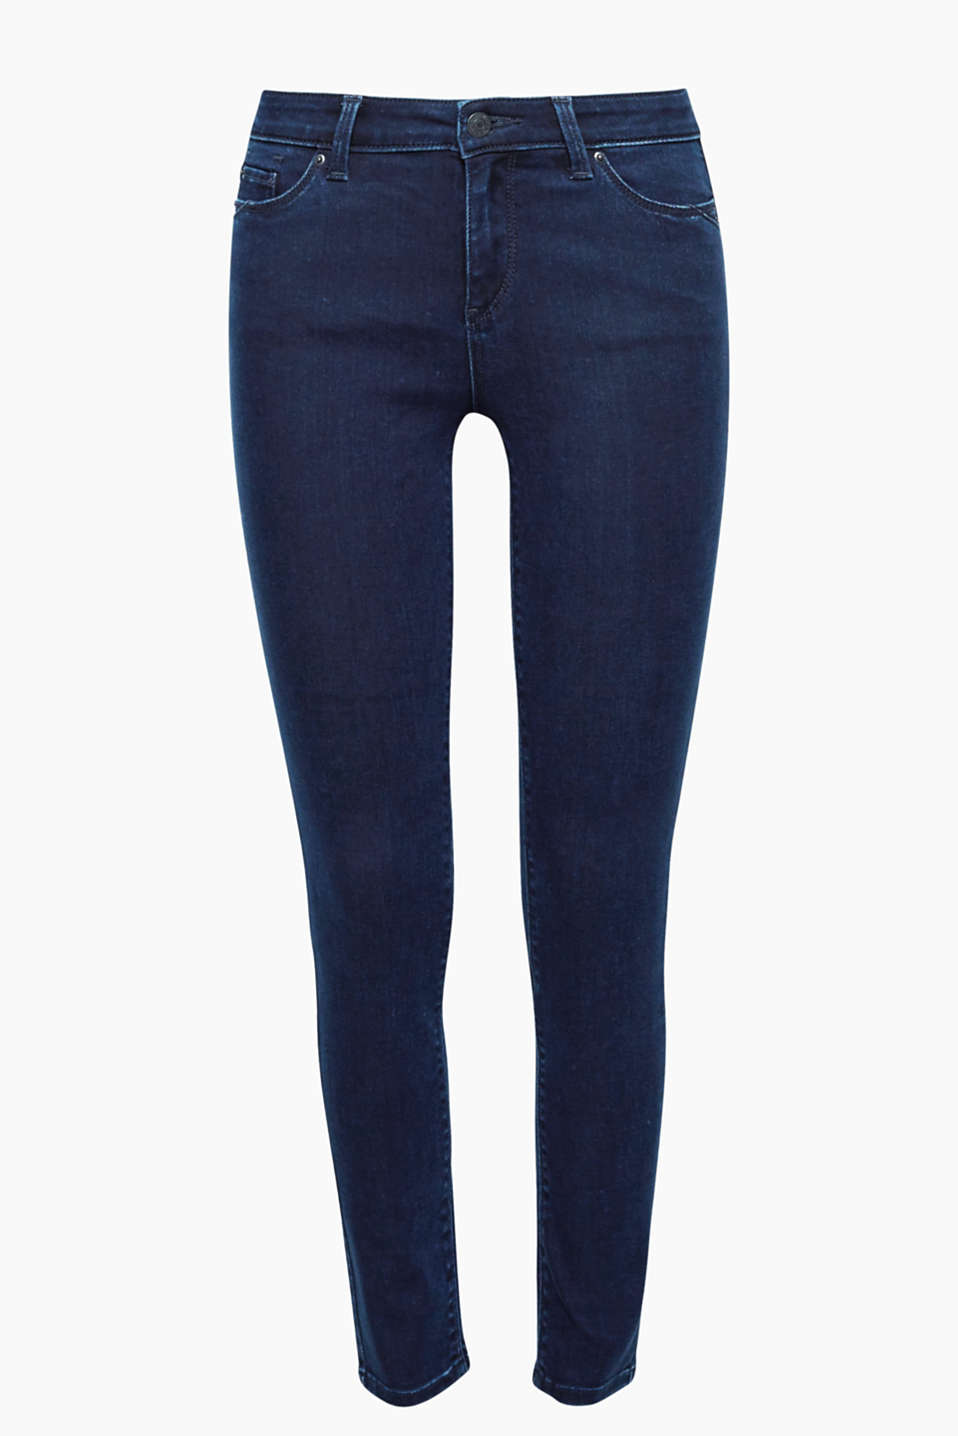 Easy to mix and match yet still trendy: coloured jeans with added stretch for comfort and stitching on the pockets!